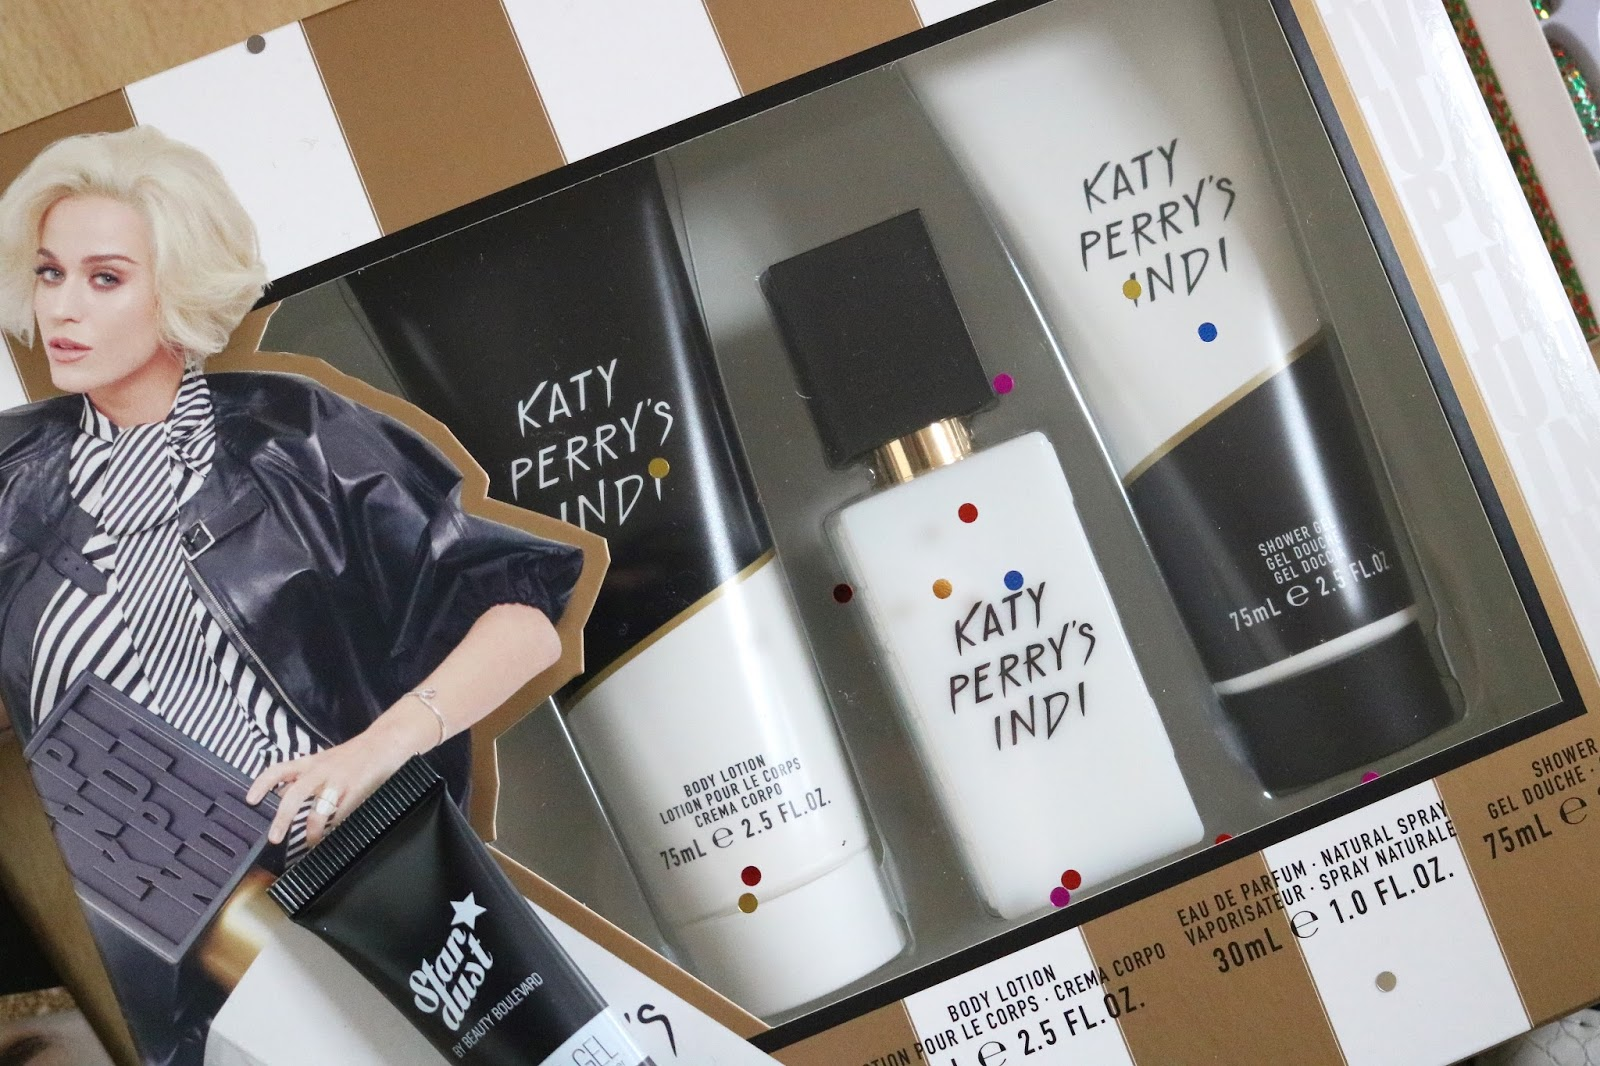 katy perry indi perfume set